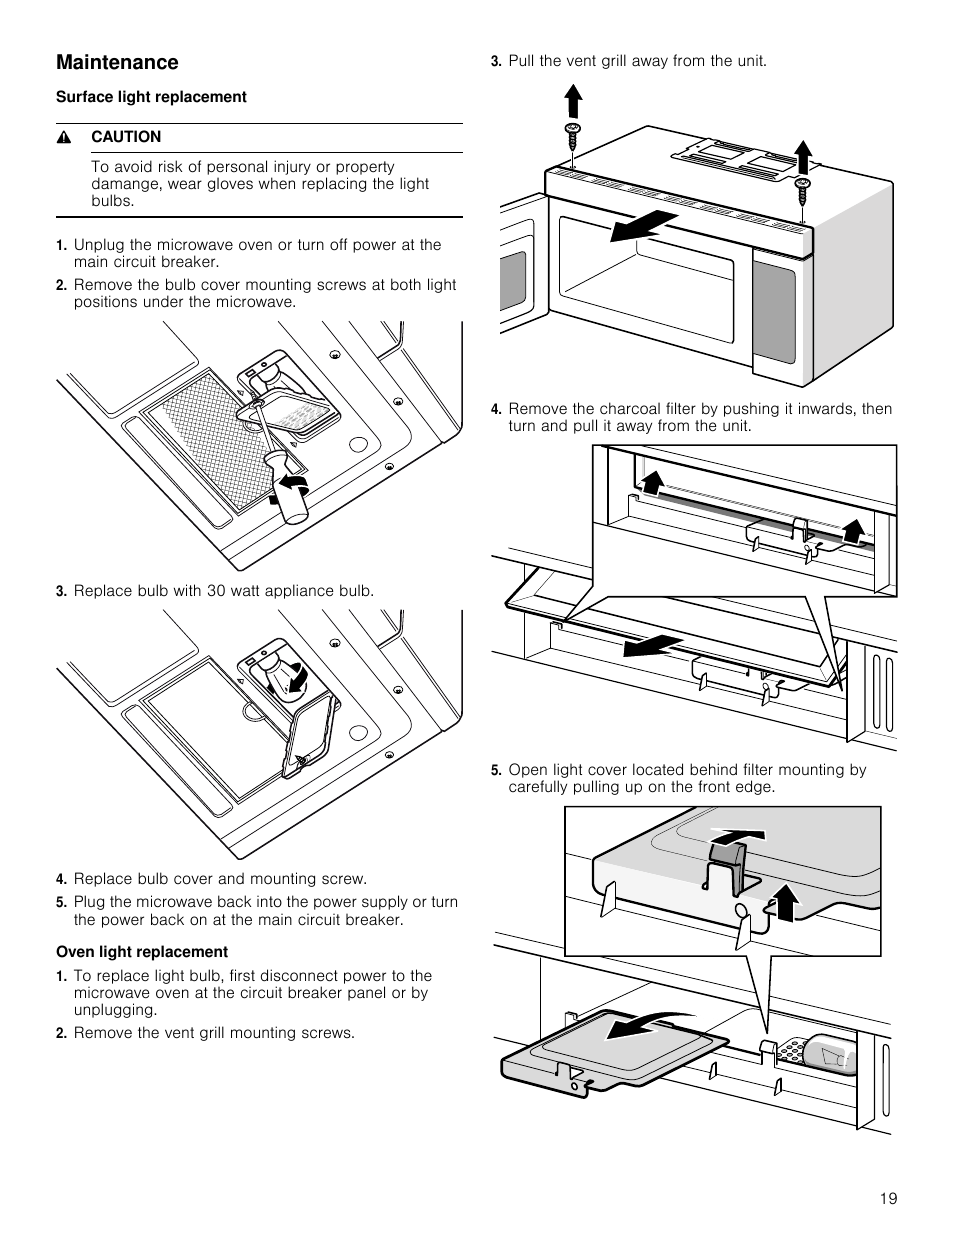 How To Remove Light Bulb Cover On Bosch Oven Lighting